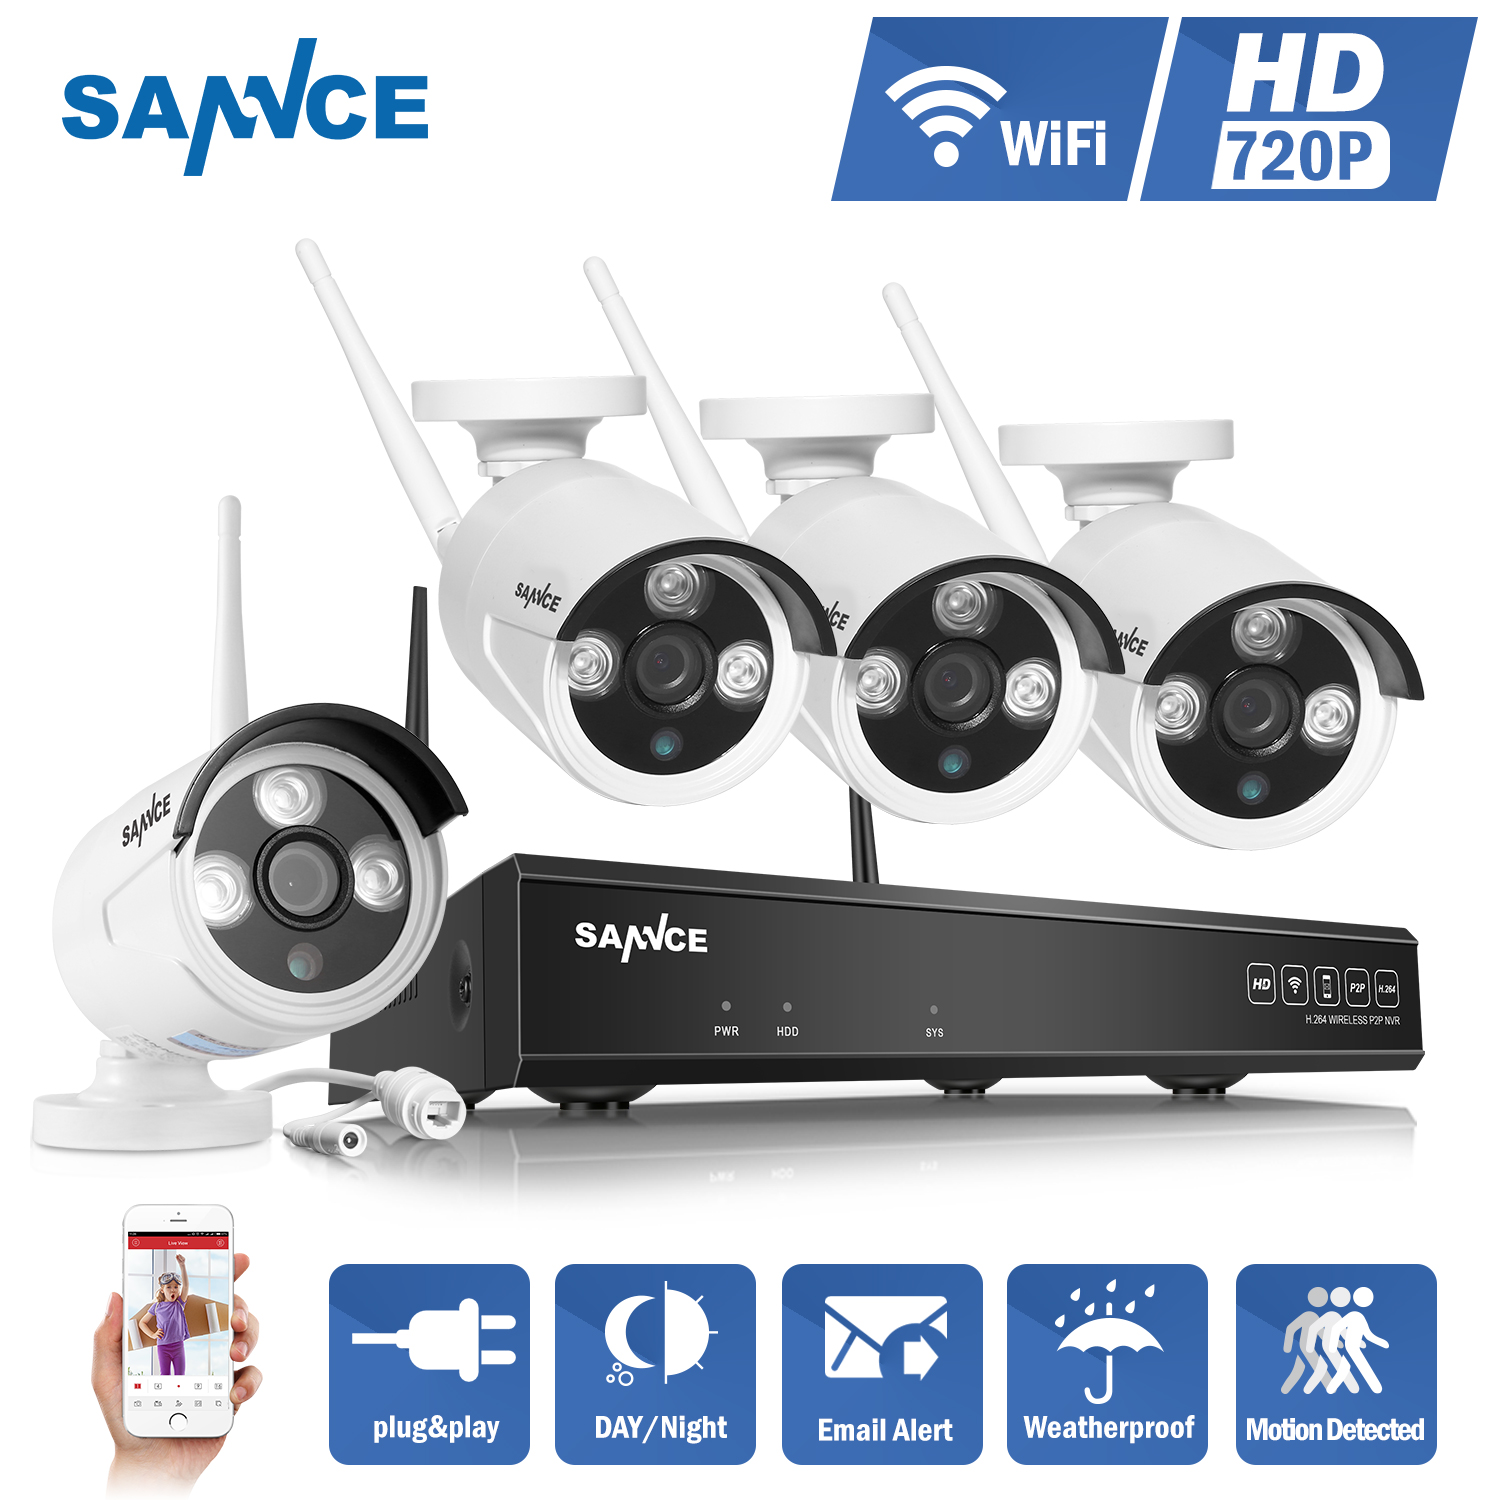 SANNCE 4CH Wireless IP Camera Wi-fi NVR Kit 720P HD Outdoor IR Night Vision Security Network WIFI CCTV System P2P Plug and Play escam wnk403 plug and play wireless nvr kit p2p 720p hd outdoor ir night vision security ip camera wifi cctv system